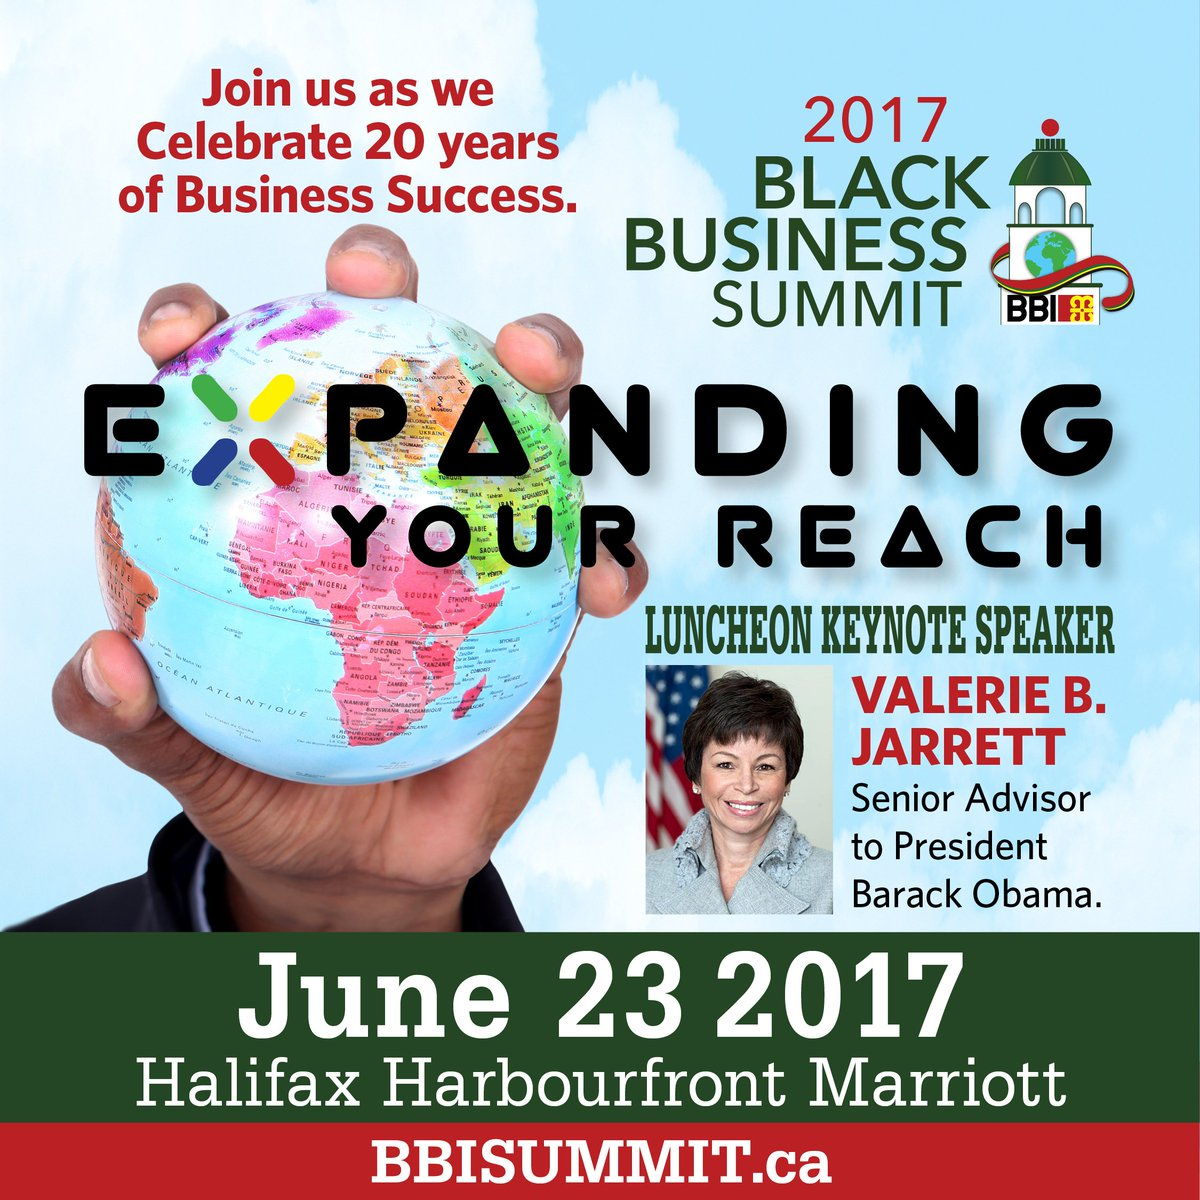 We are beyond excited to welcome @ValerieJarrett, former Senior Adviso...